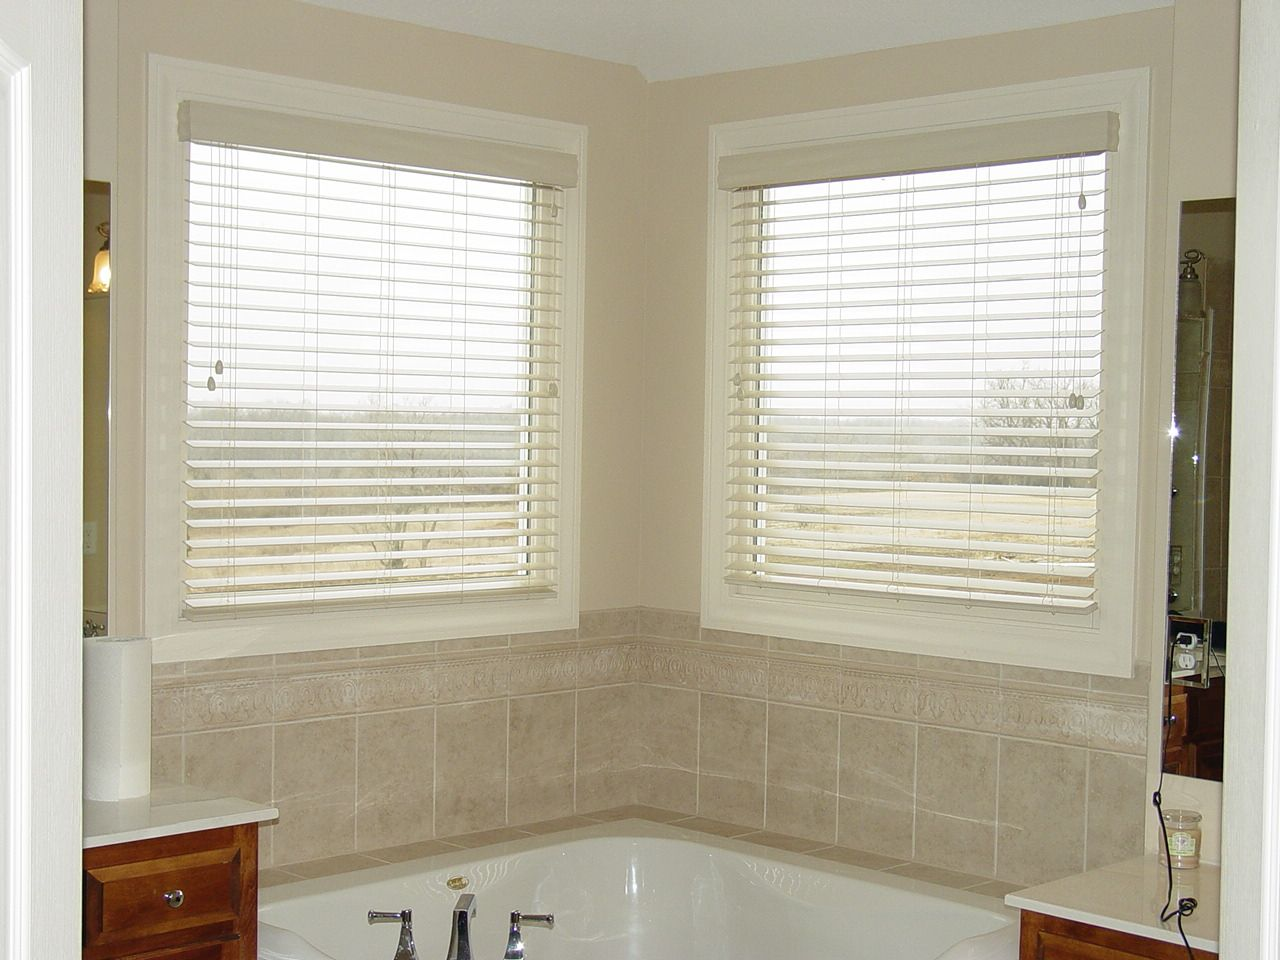 2 Inch Lake Forest Faux Wood Blinds Inside Mount With Outside